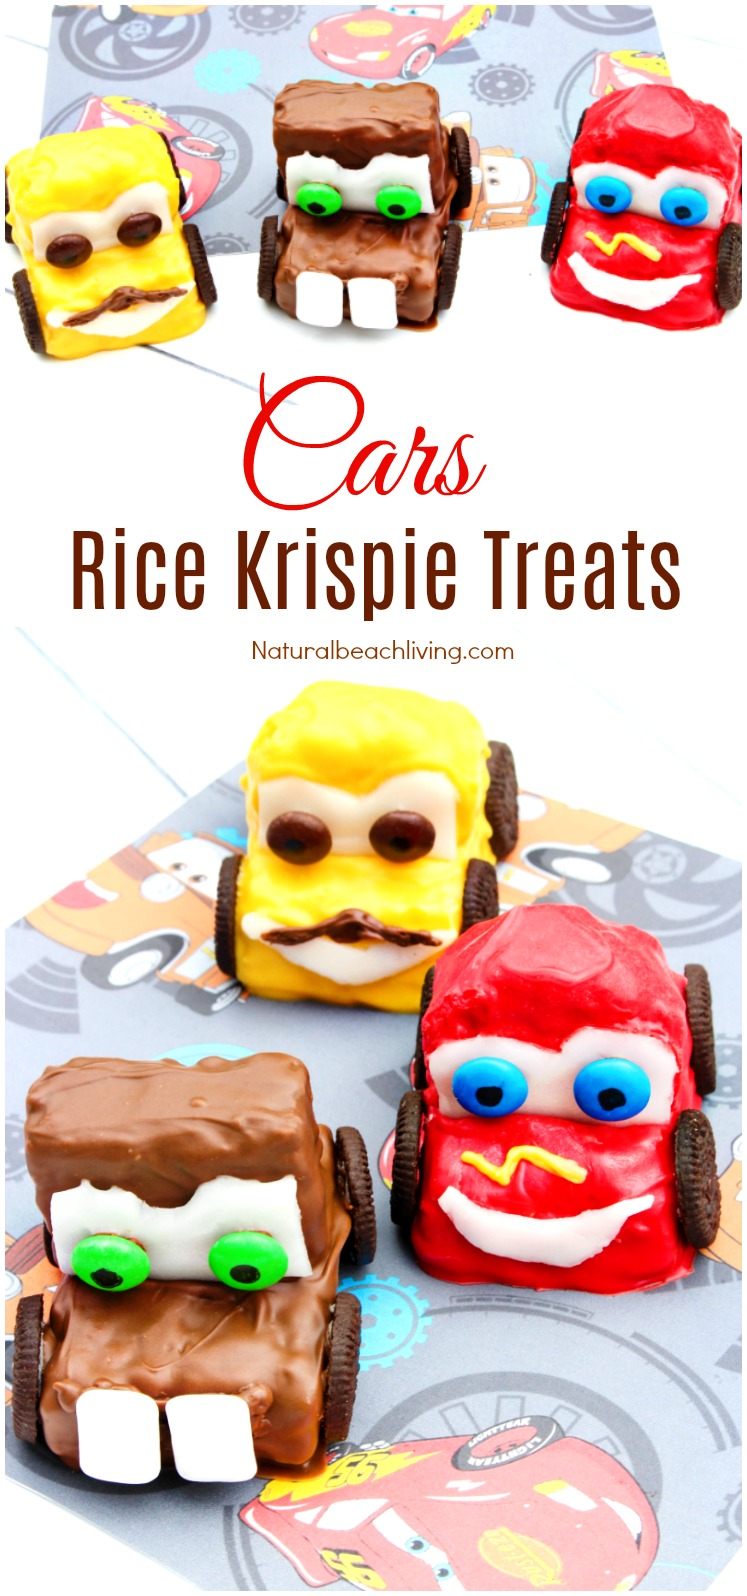 Cars Rice Krispie Treats, Cars Party